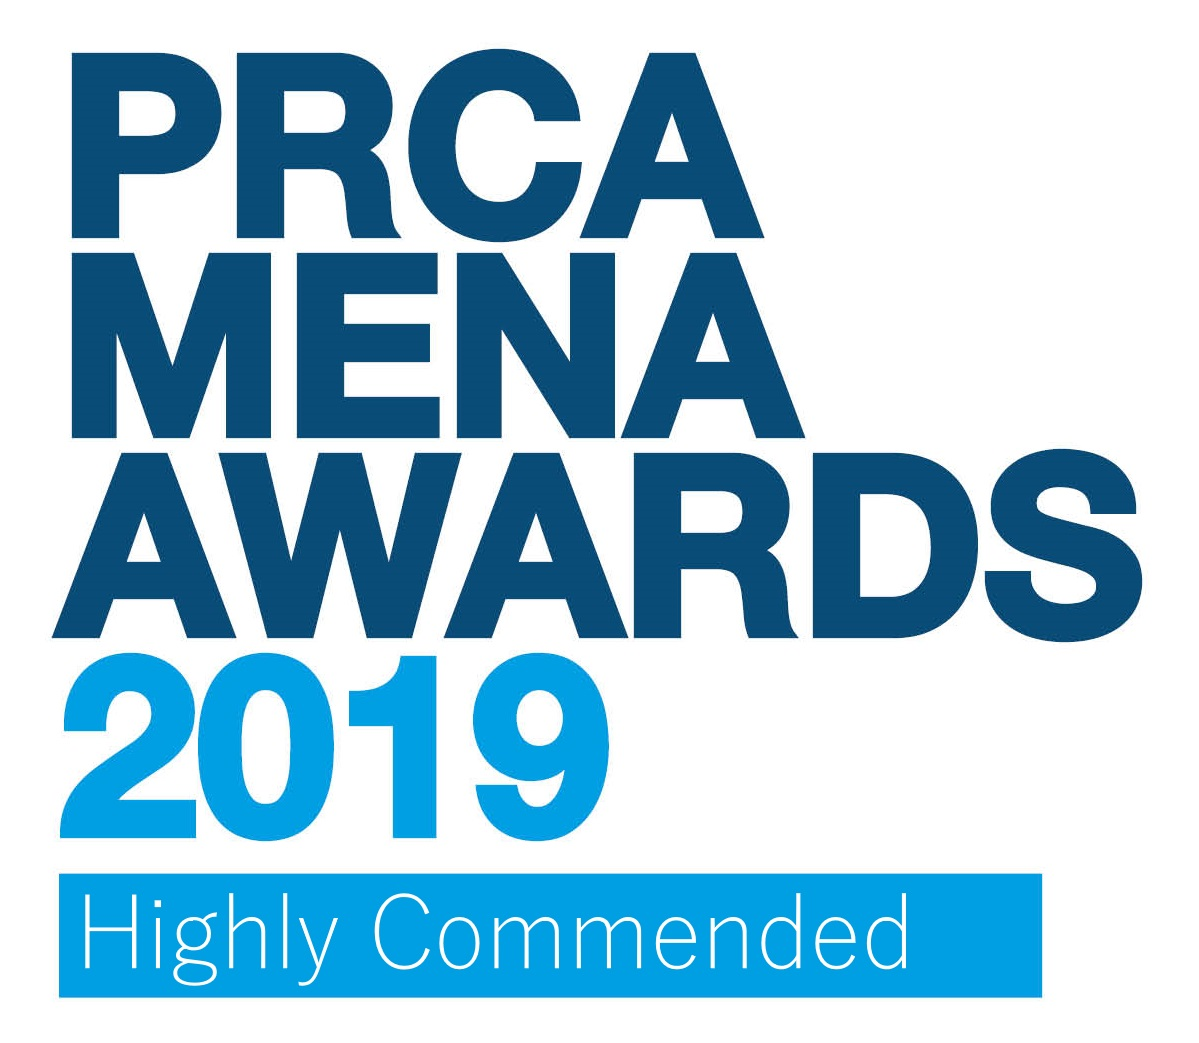 PRCA MENA Awards 2019 Highly Commended